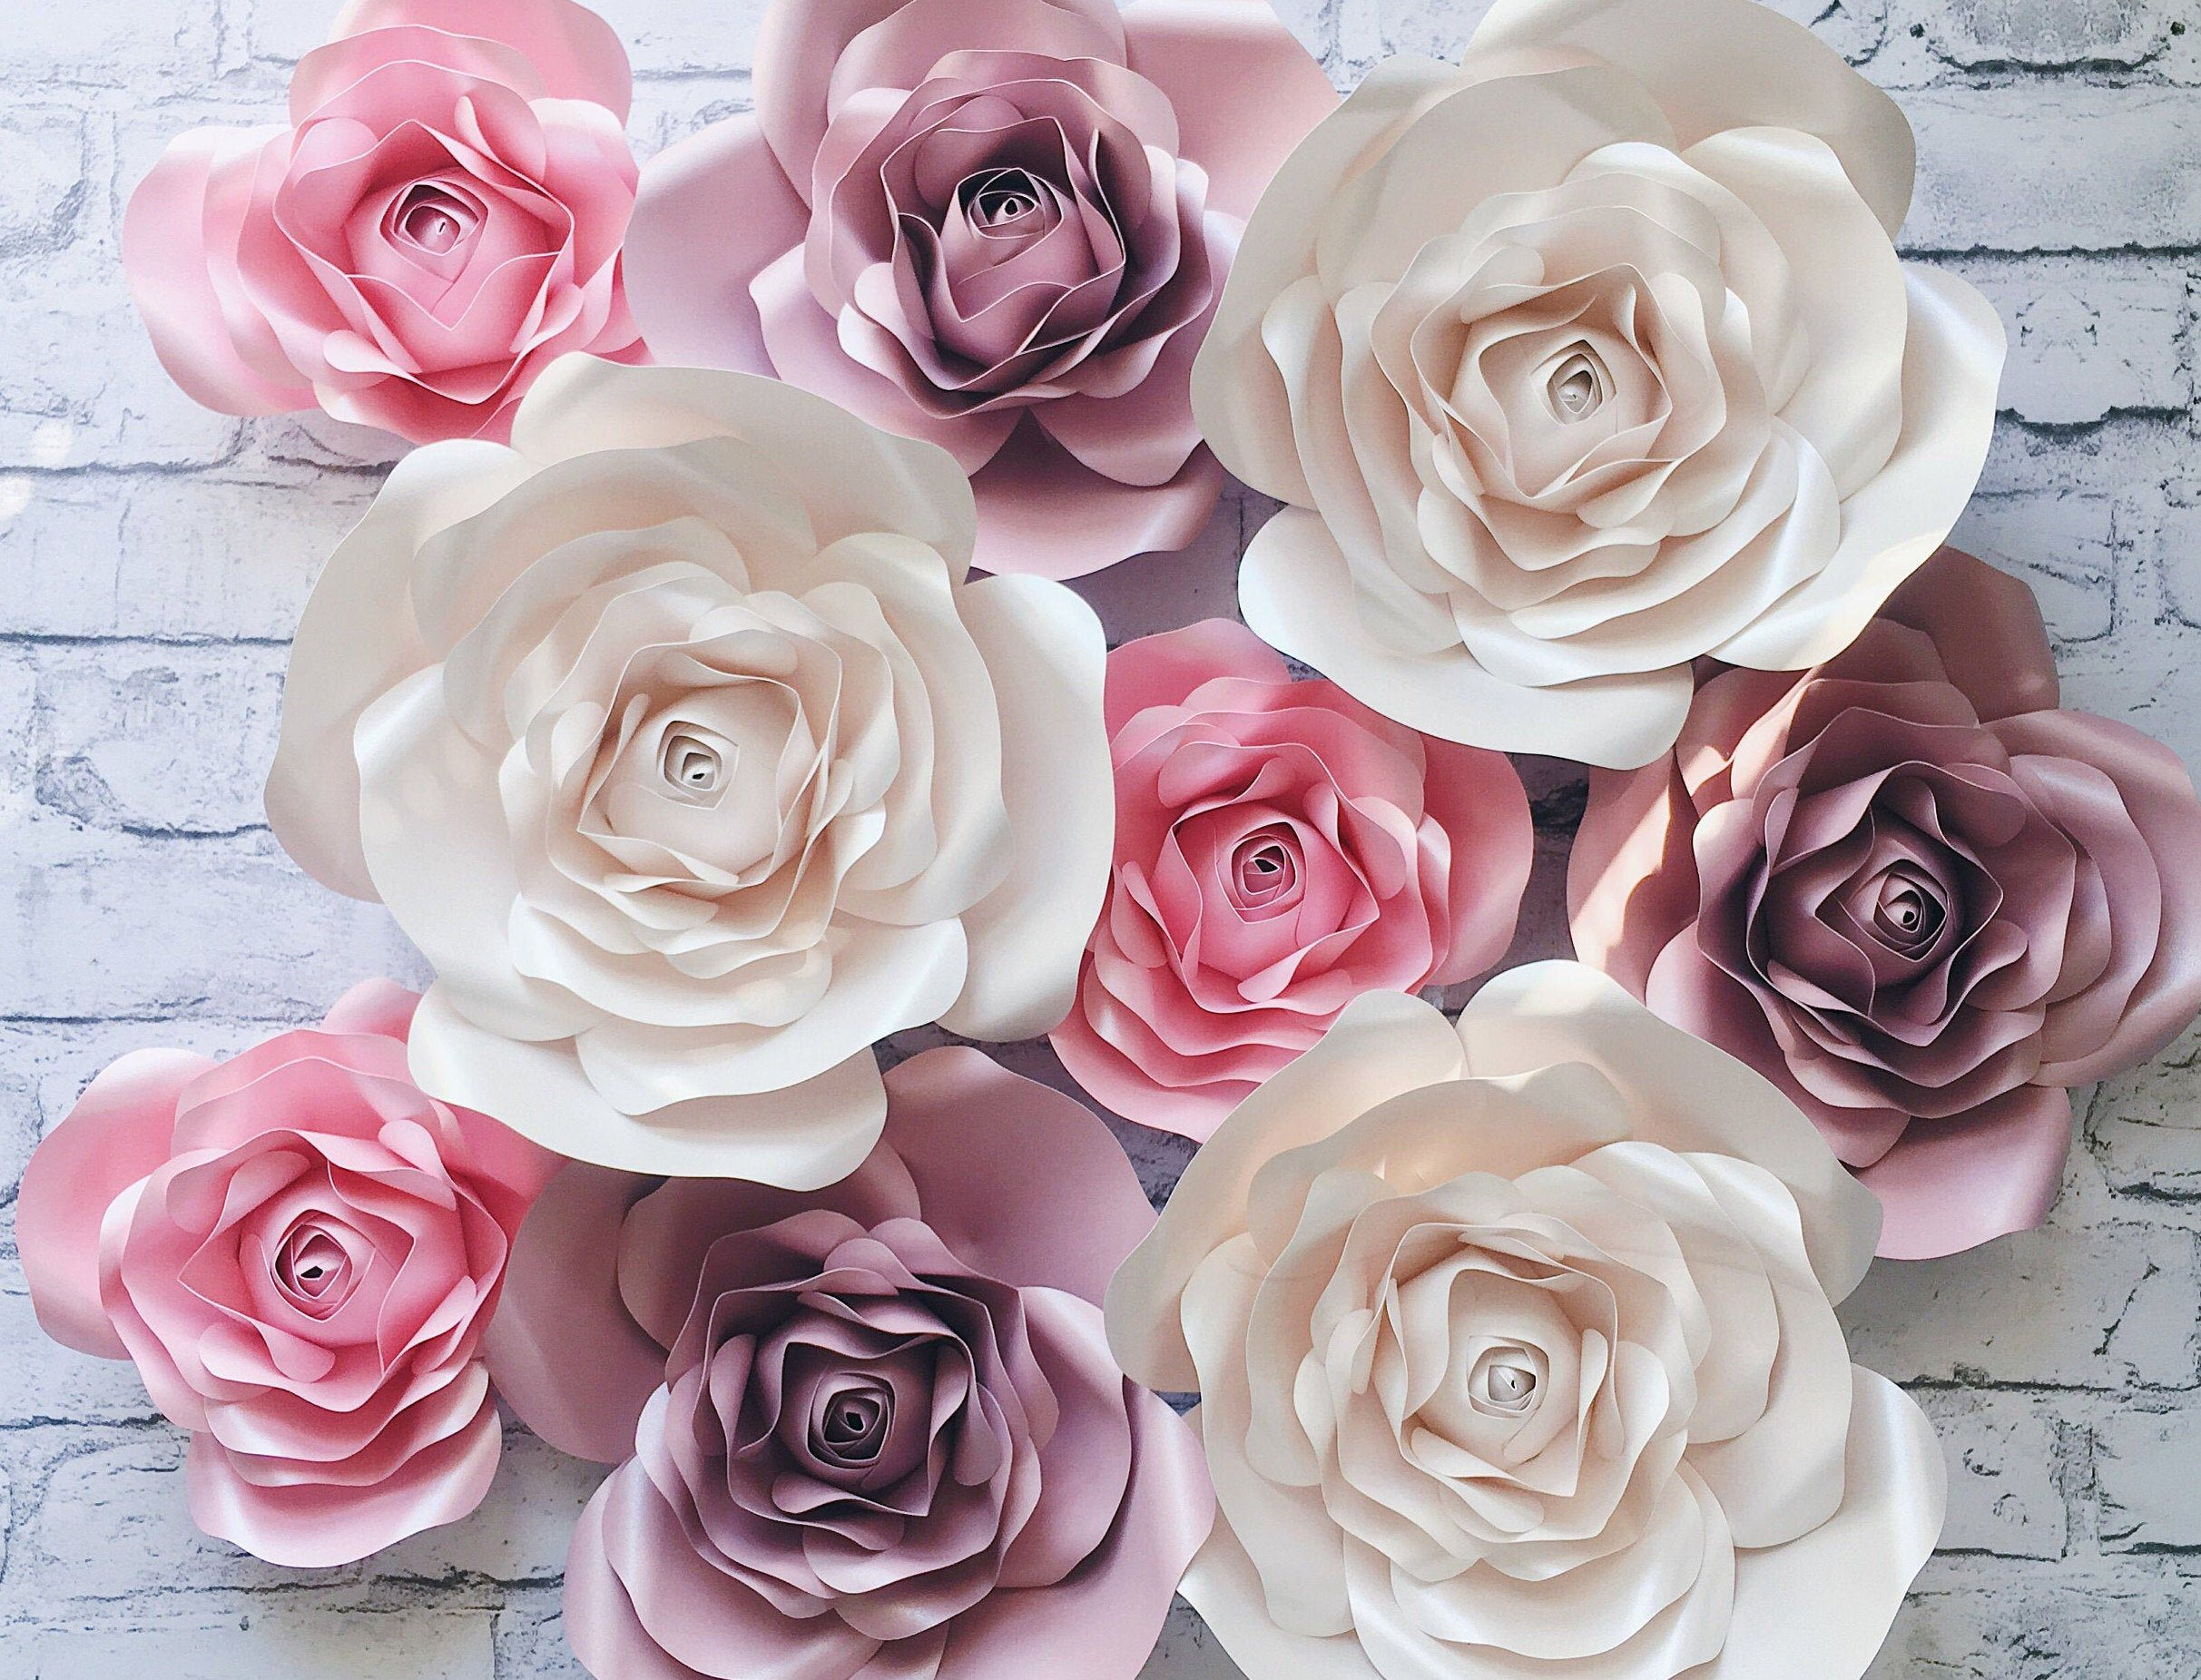 3D PAPER FLOWERS backdrop, Nursery roses Wall Decor #bigpaperflowers